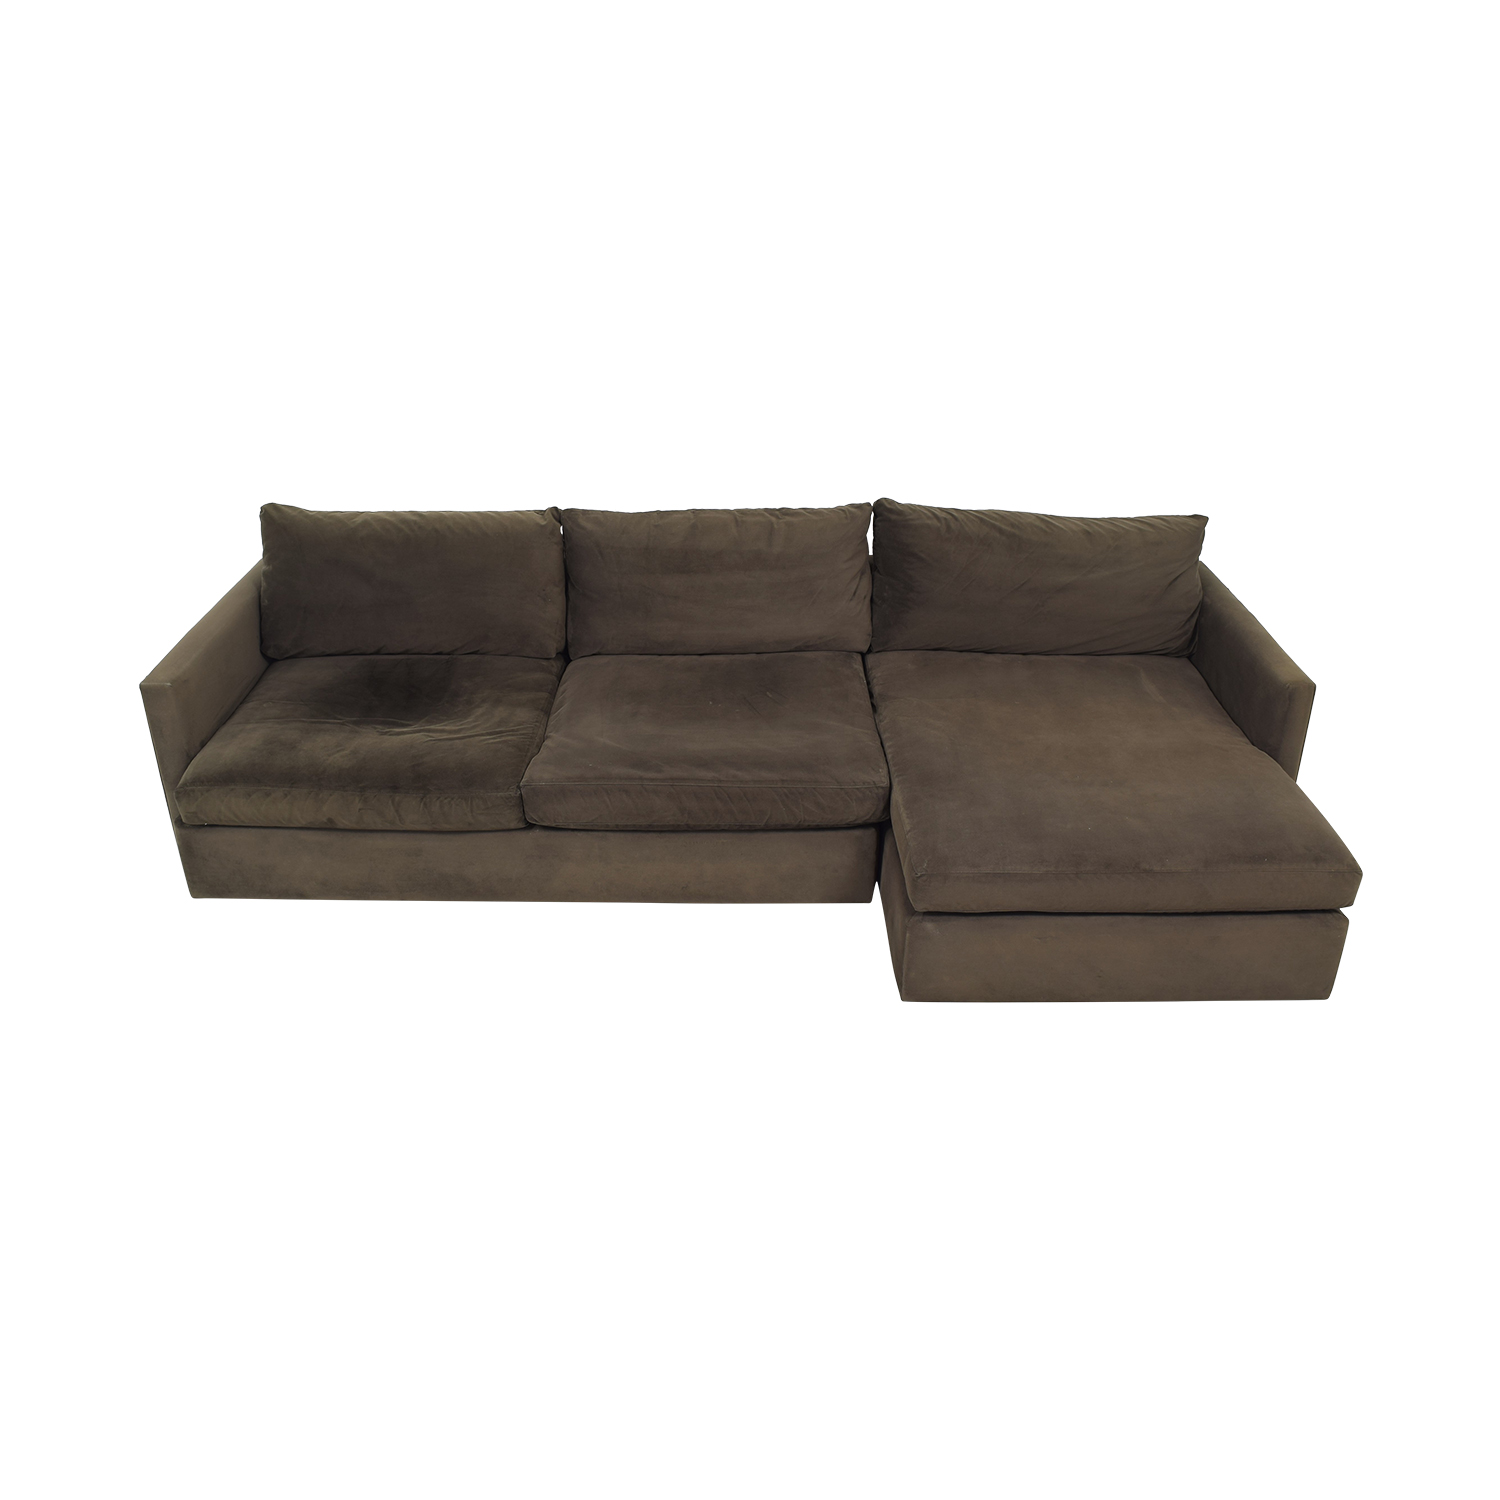 Crate & Barrel Crate & Barrel Lounge II Sectional Sofa for sale